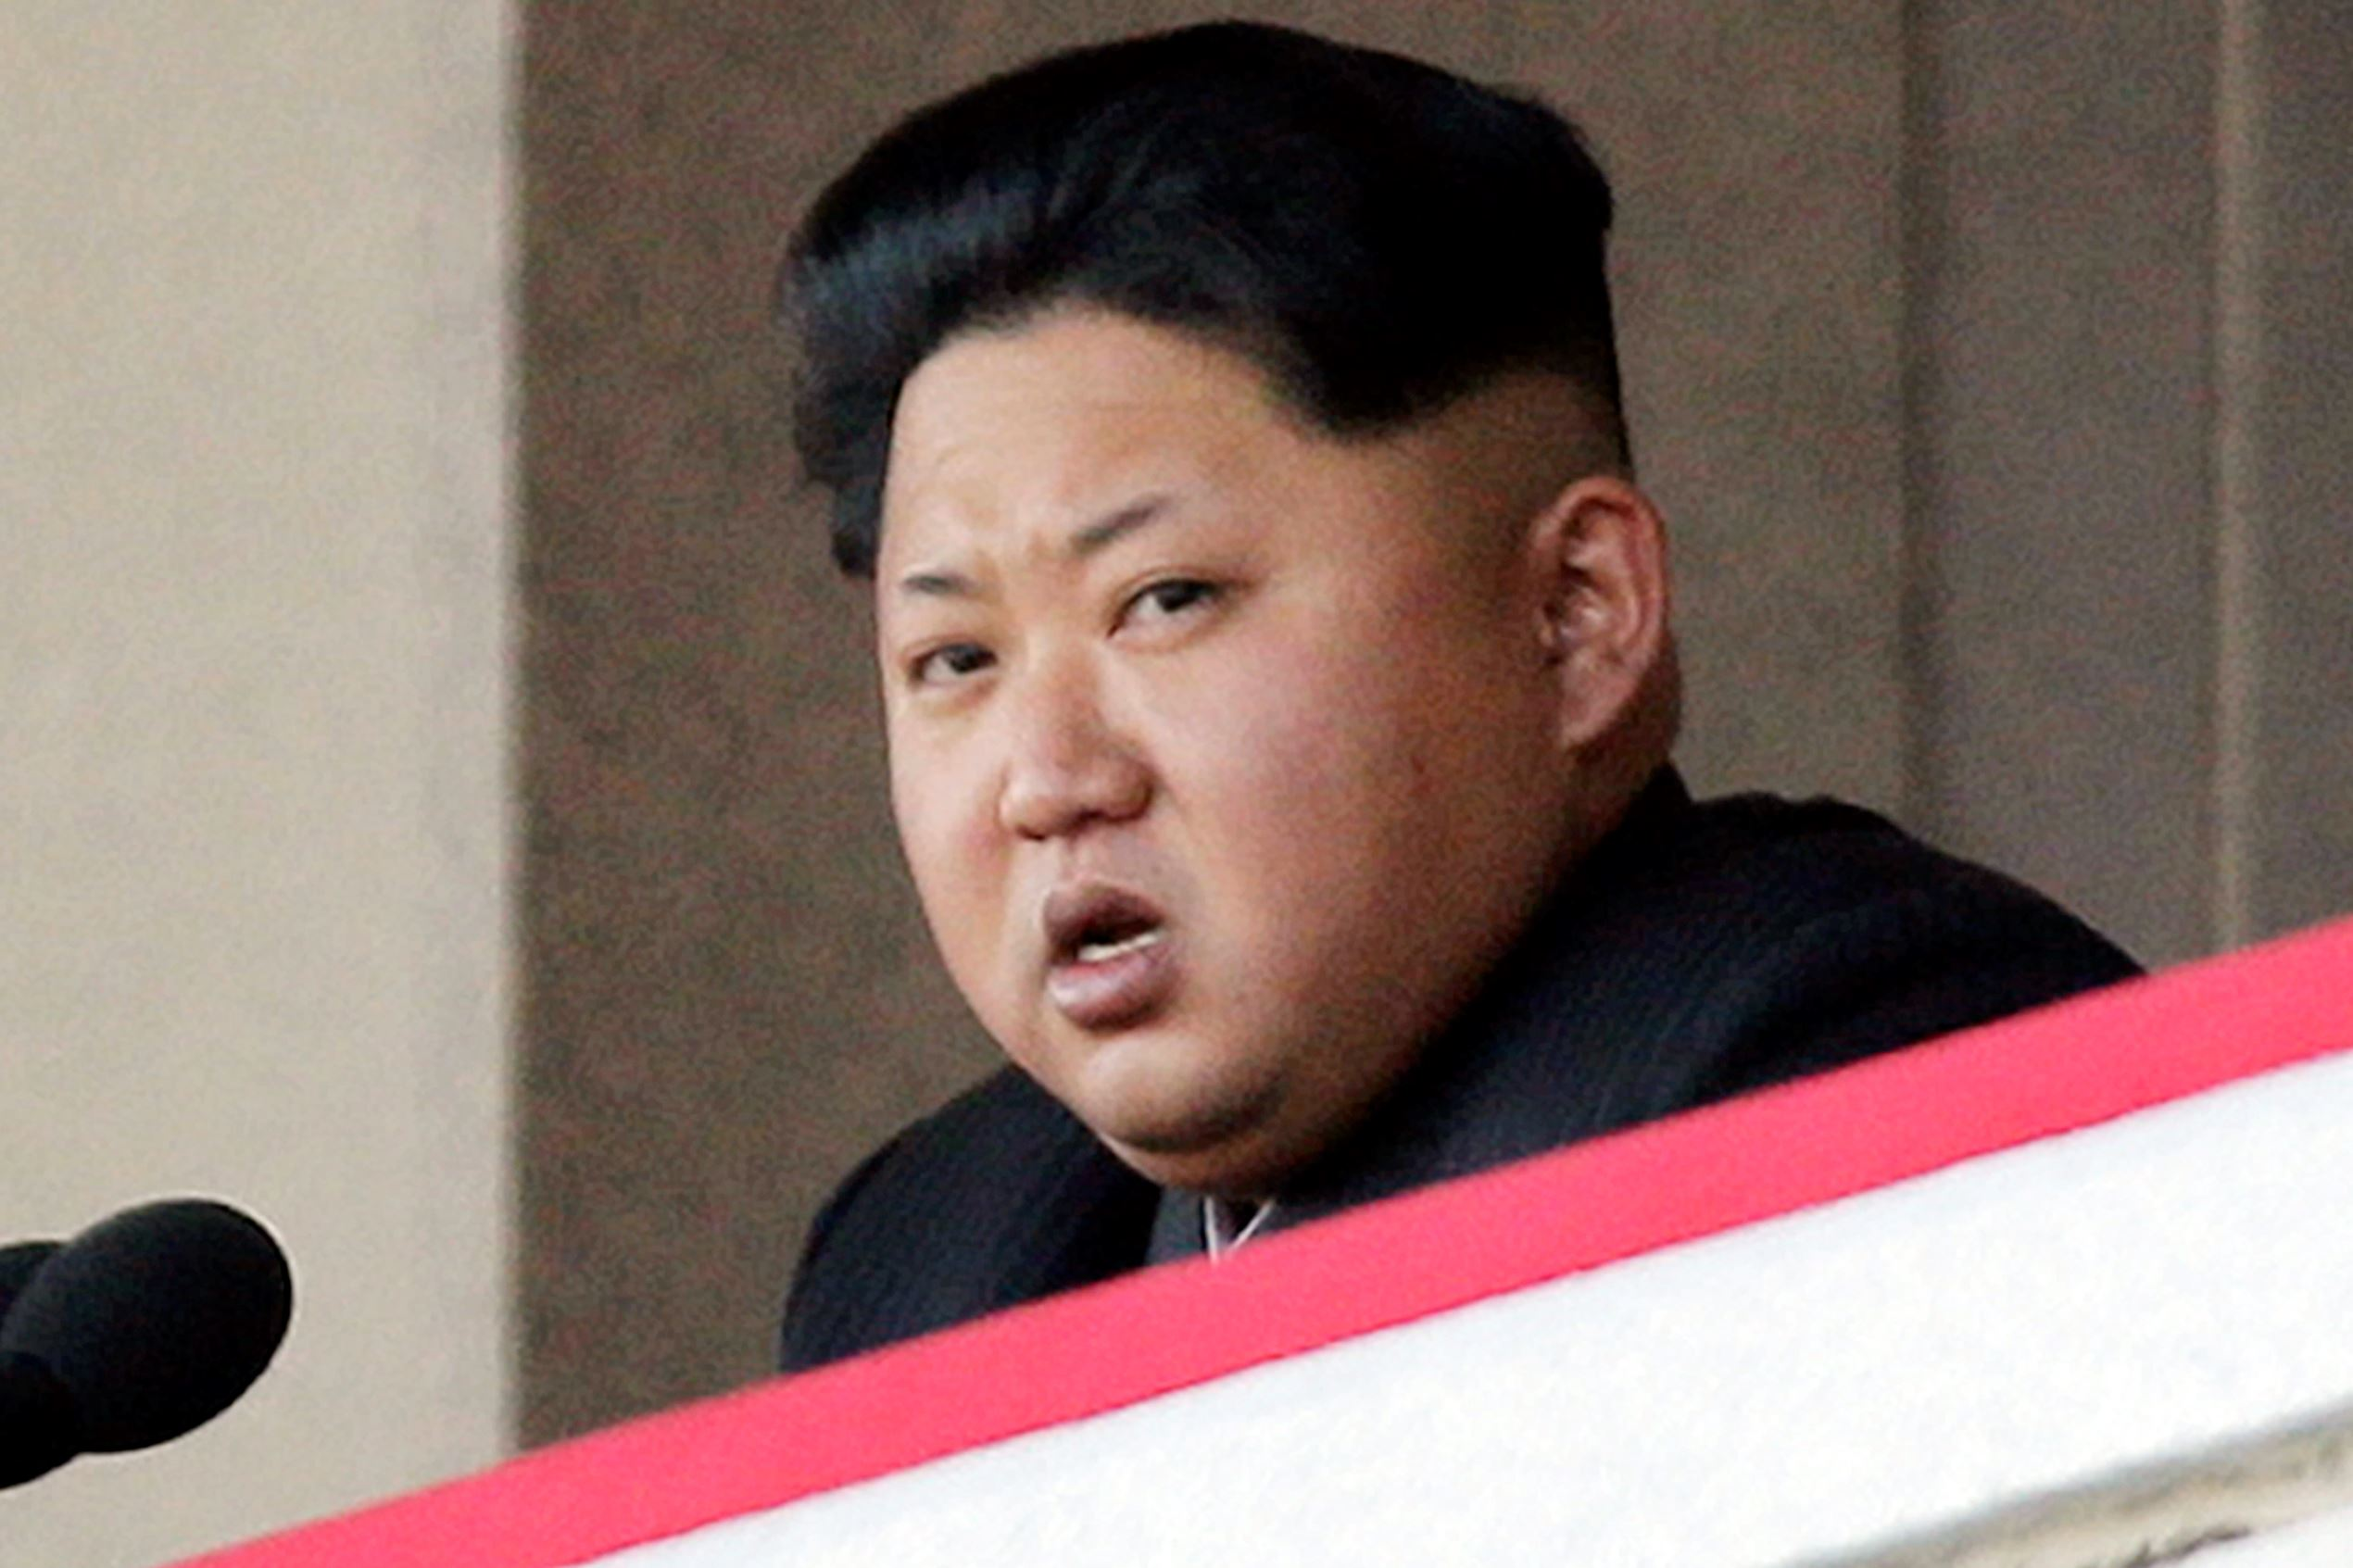 In this Oct. 10, 2015, file photo, North Korean leader Kim Jong Un delivers remarks at a military parade in Pyongyang, North Korea.